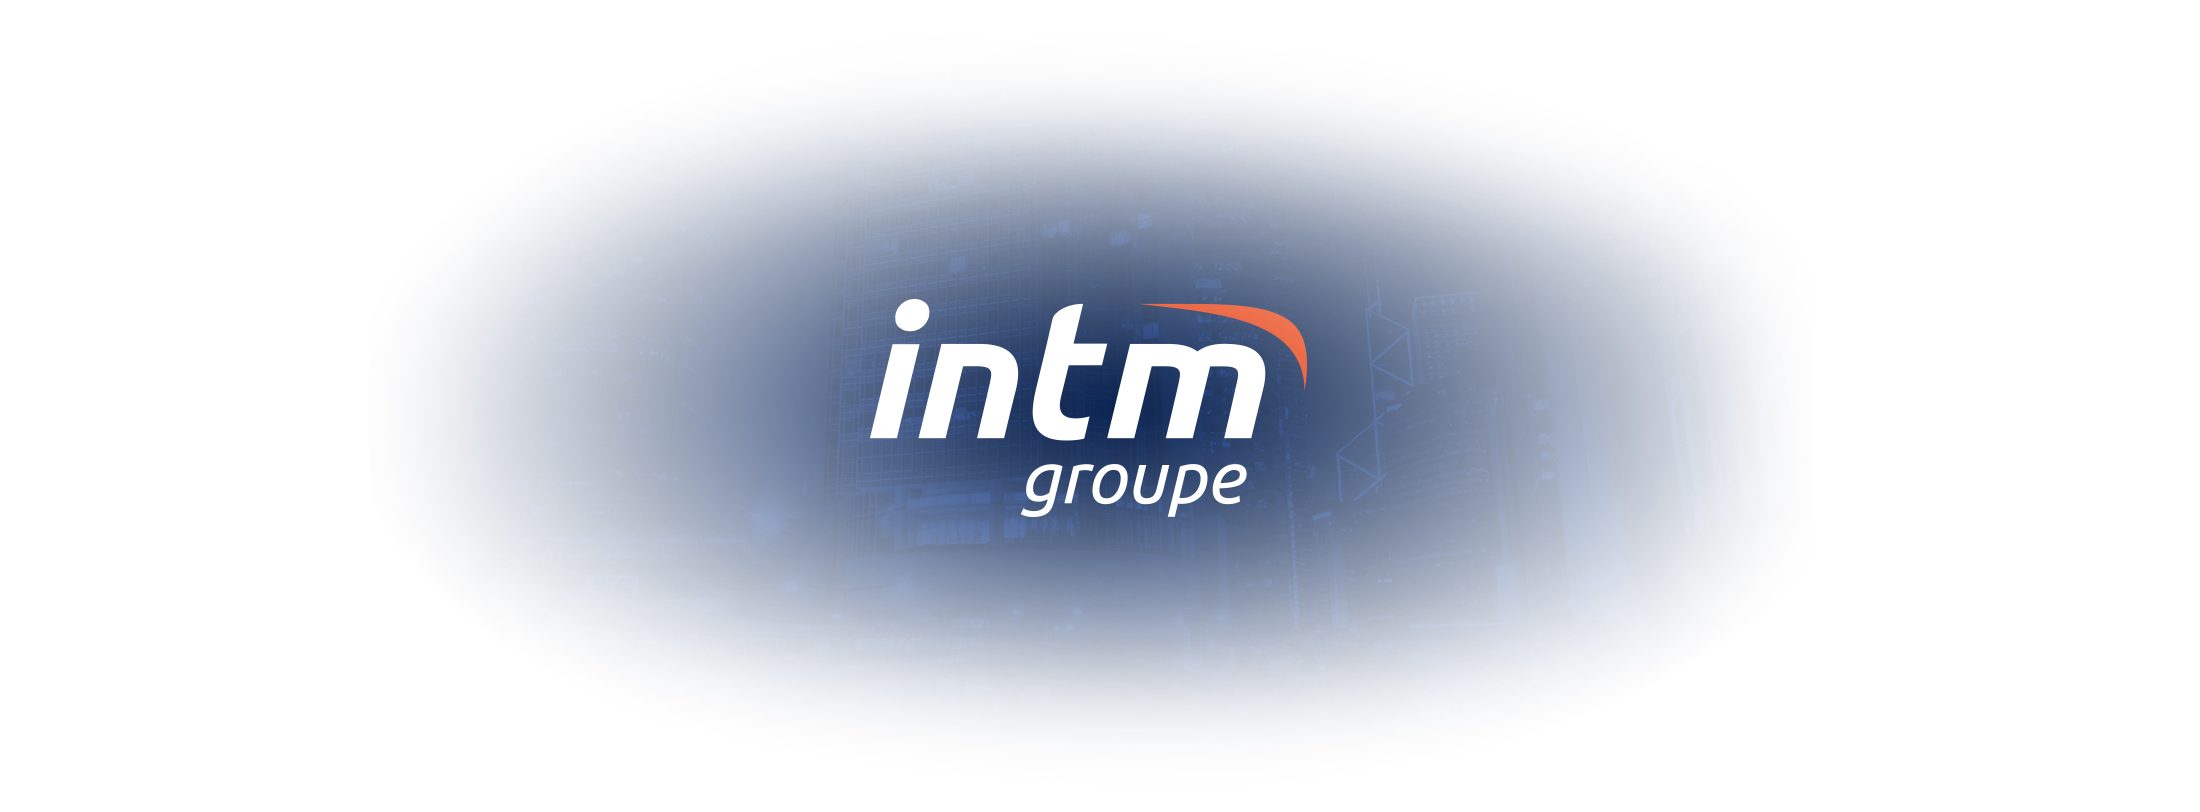 INTM-osb-communication-identite-branding